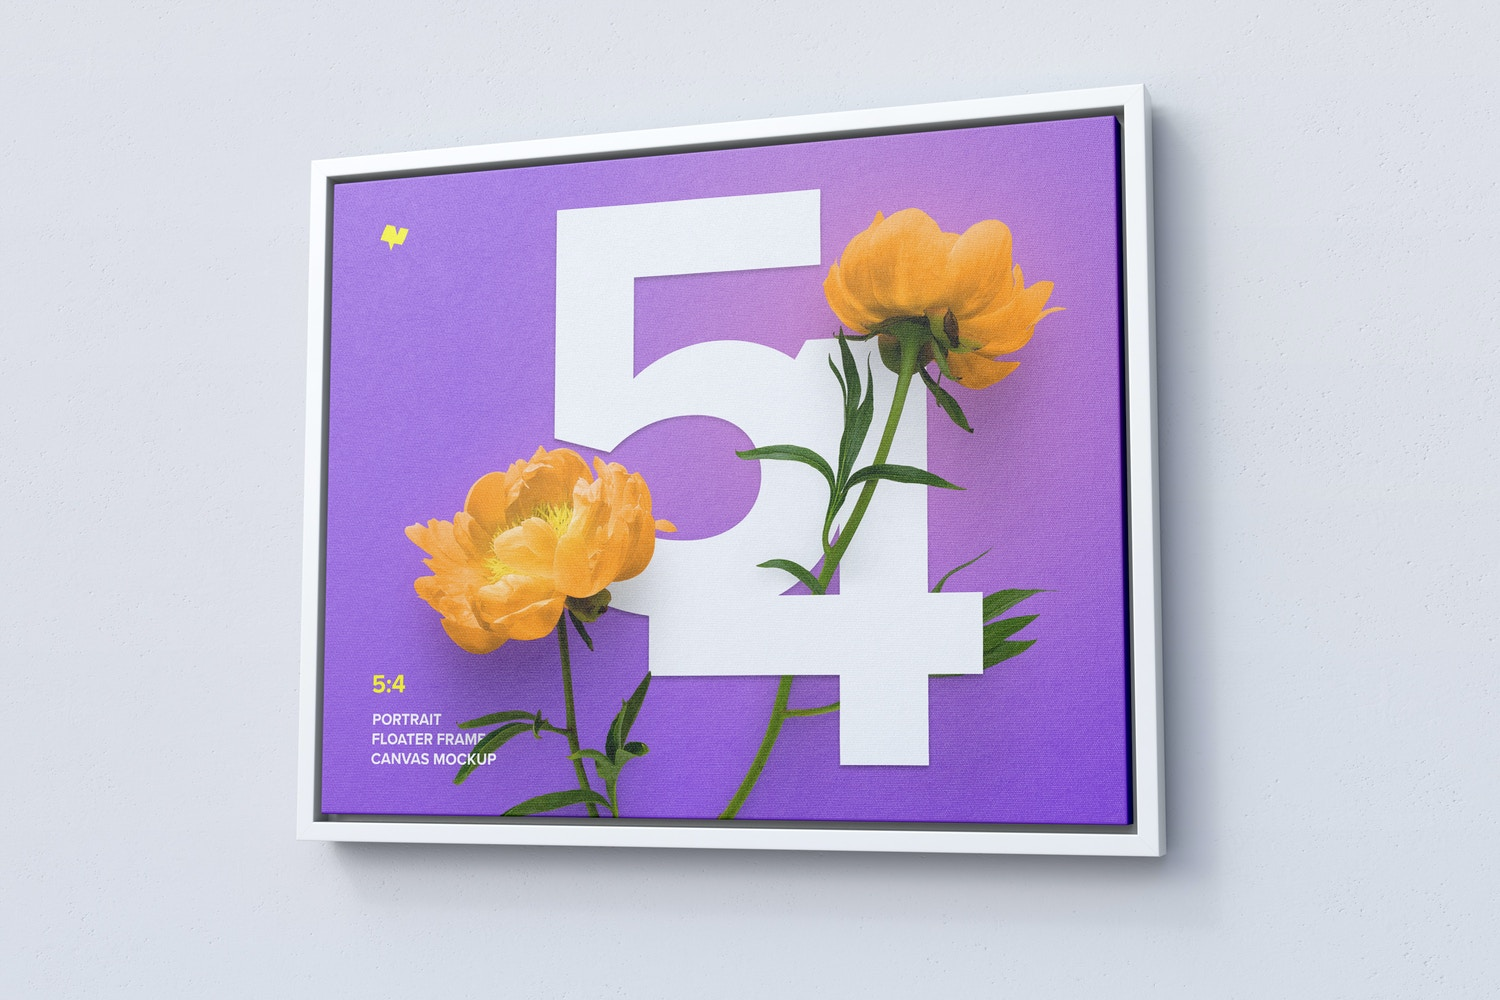 5:4 Landscape Canvas Mockup in Floater Frame, Right View